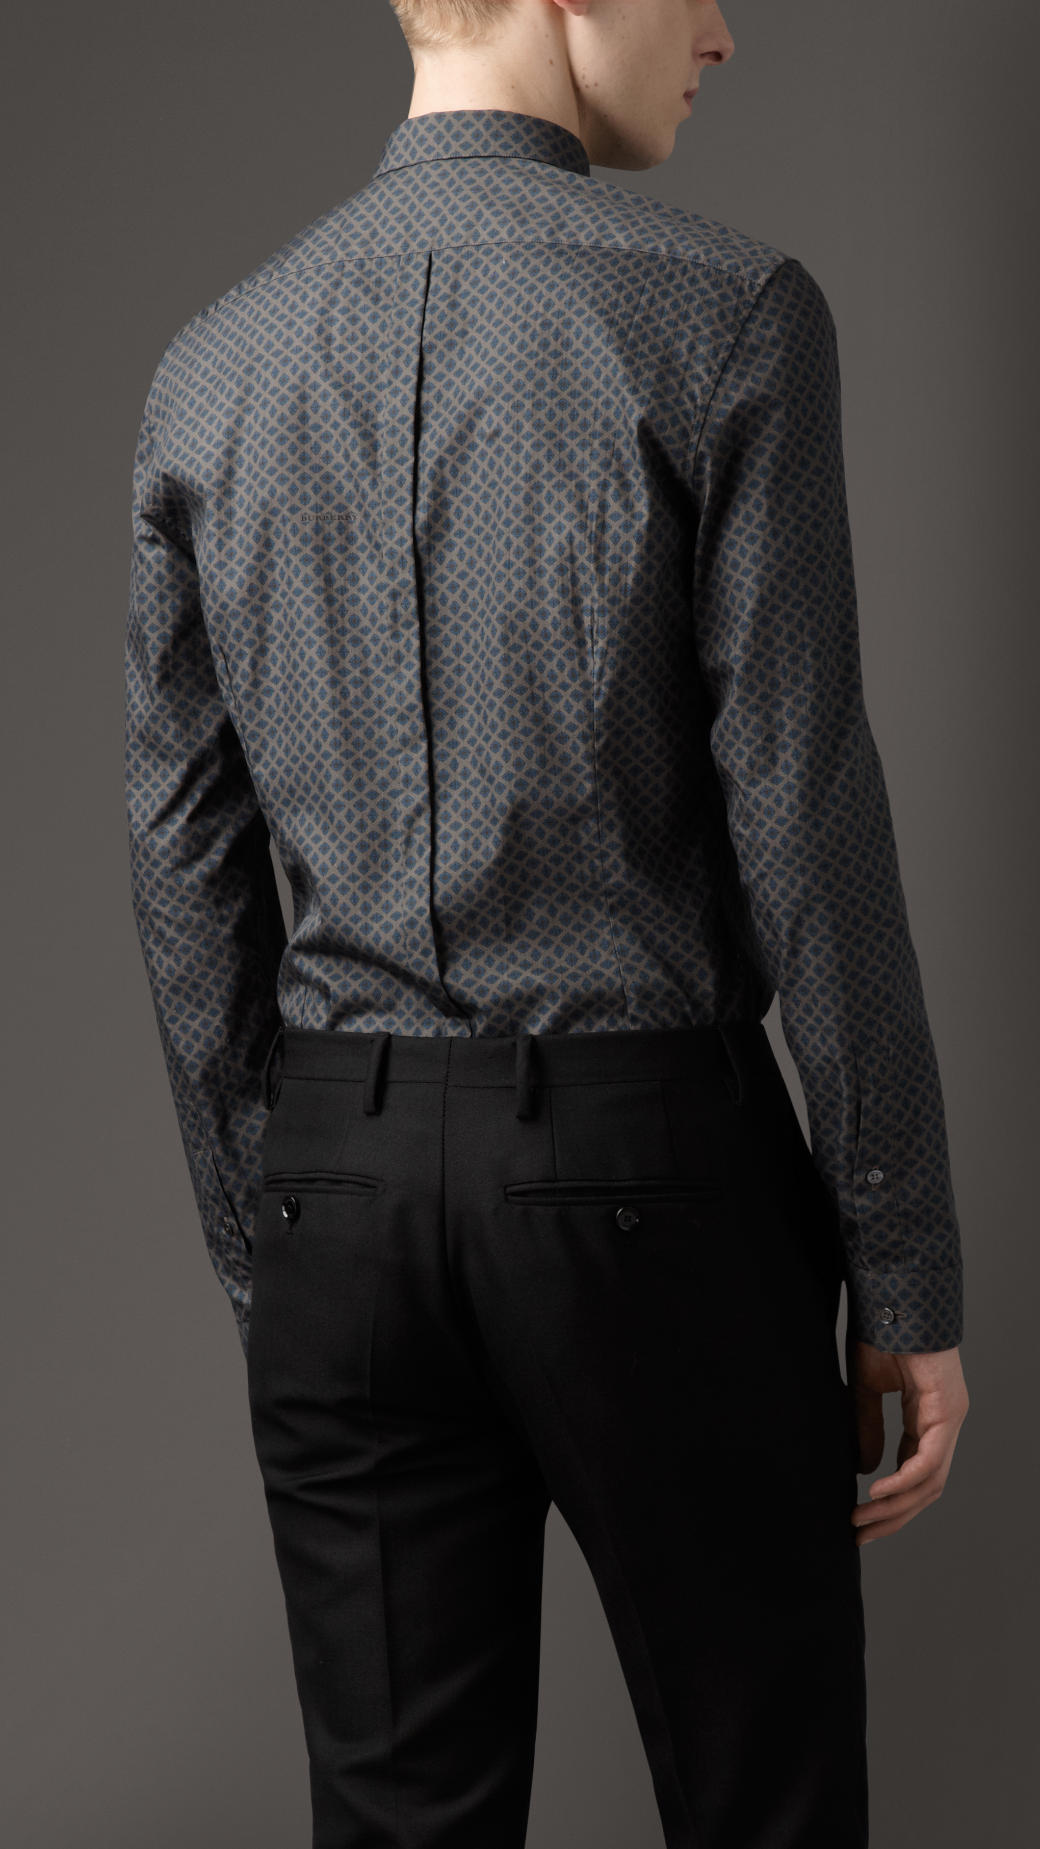 Charcoal grey button down shirt is shirt for Grey button down shirt